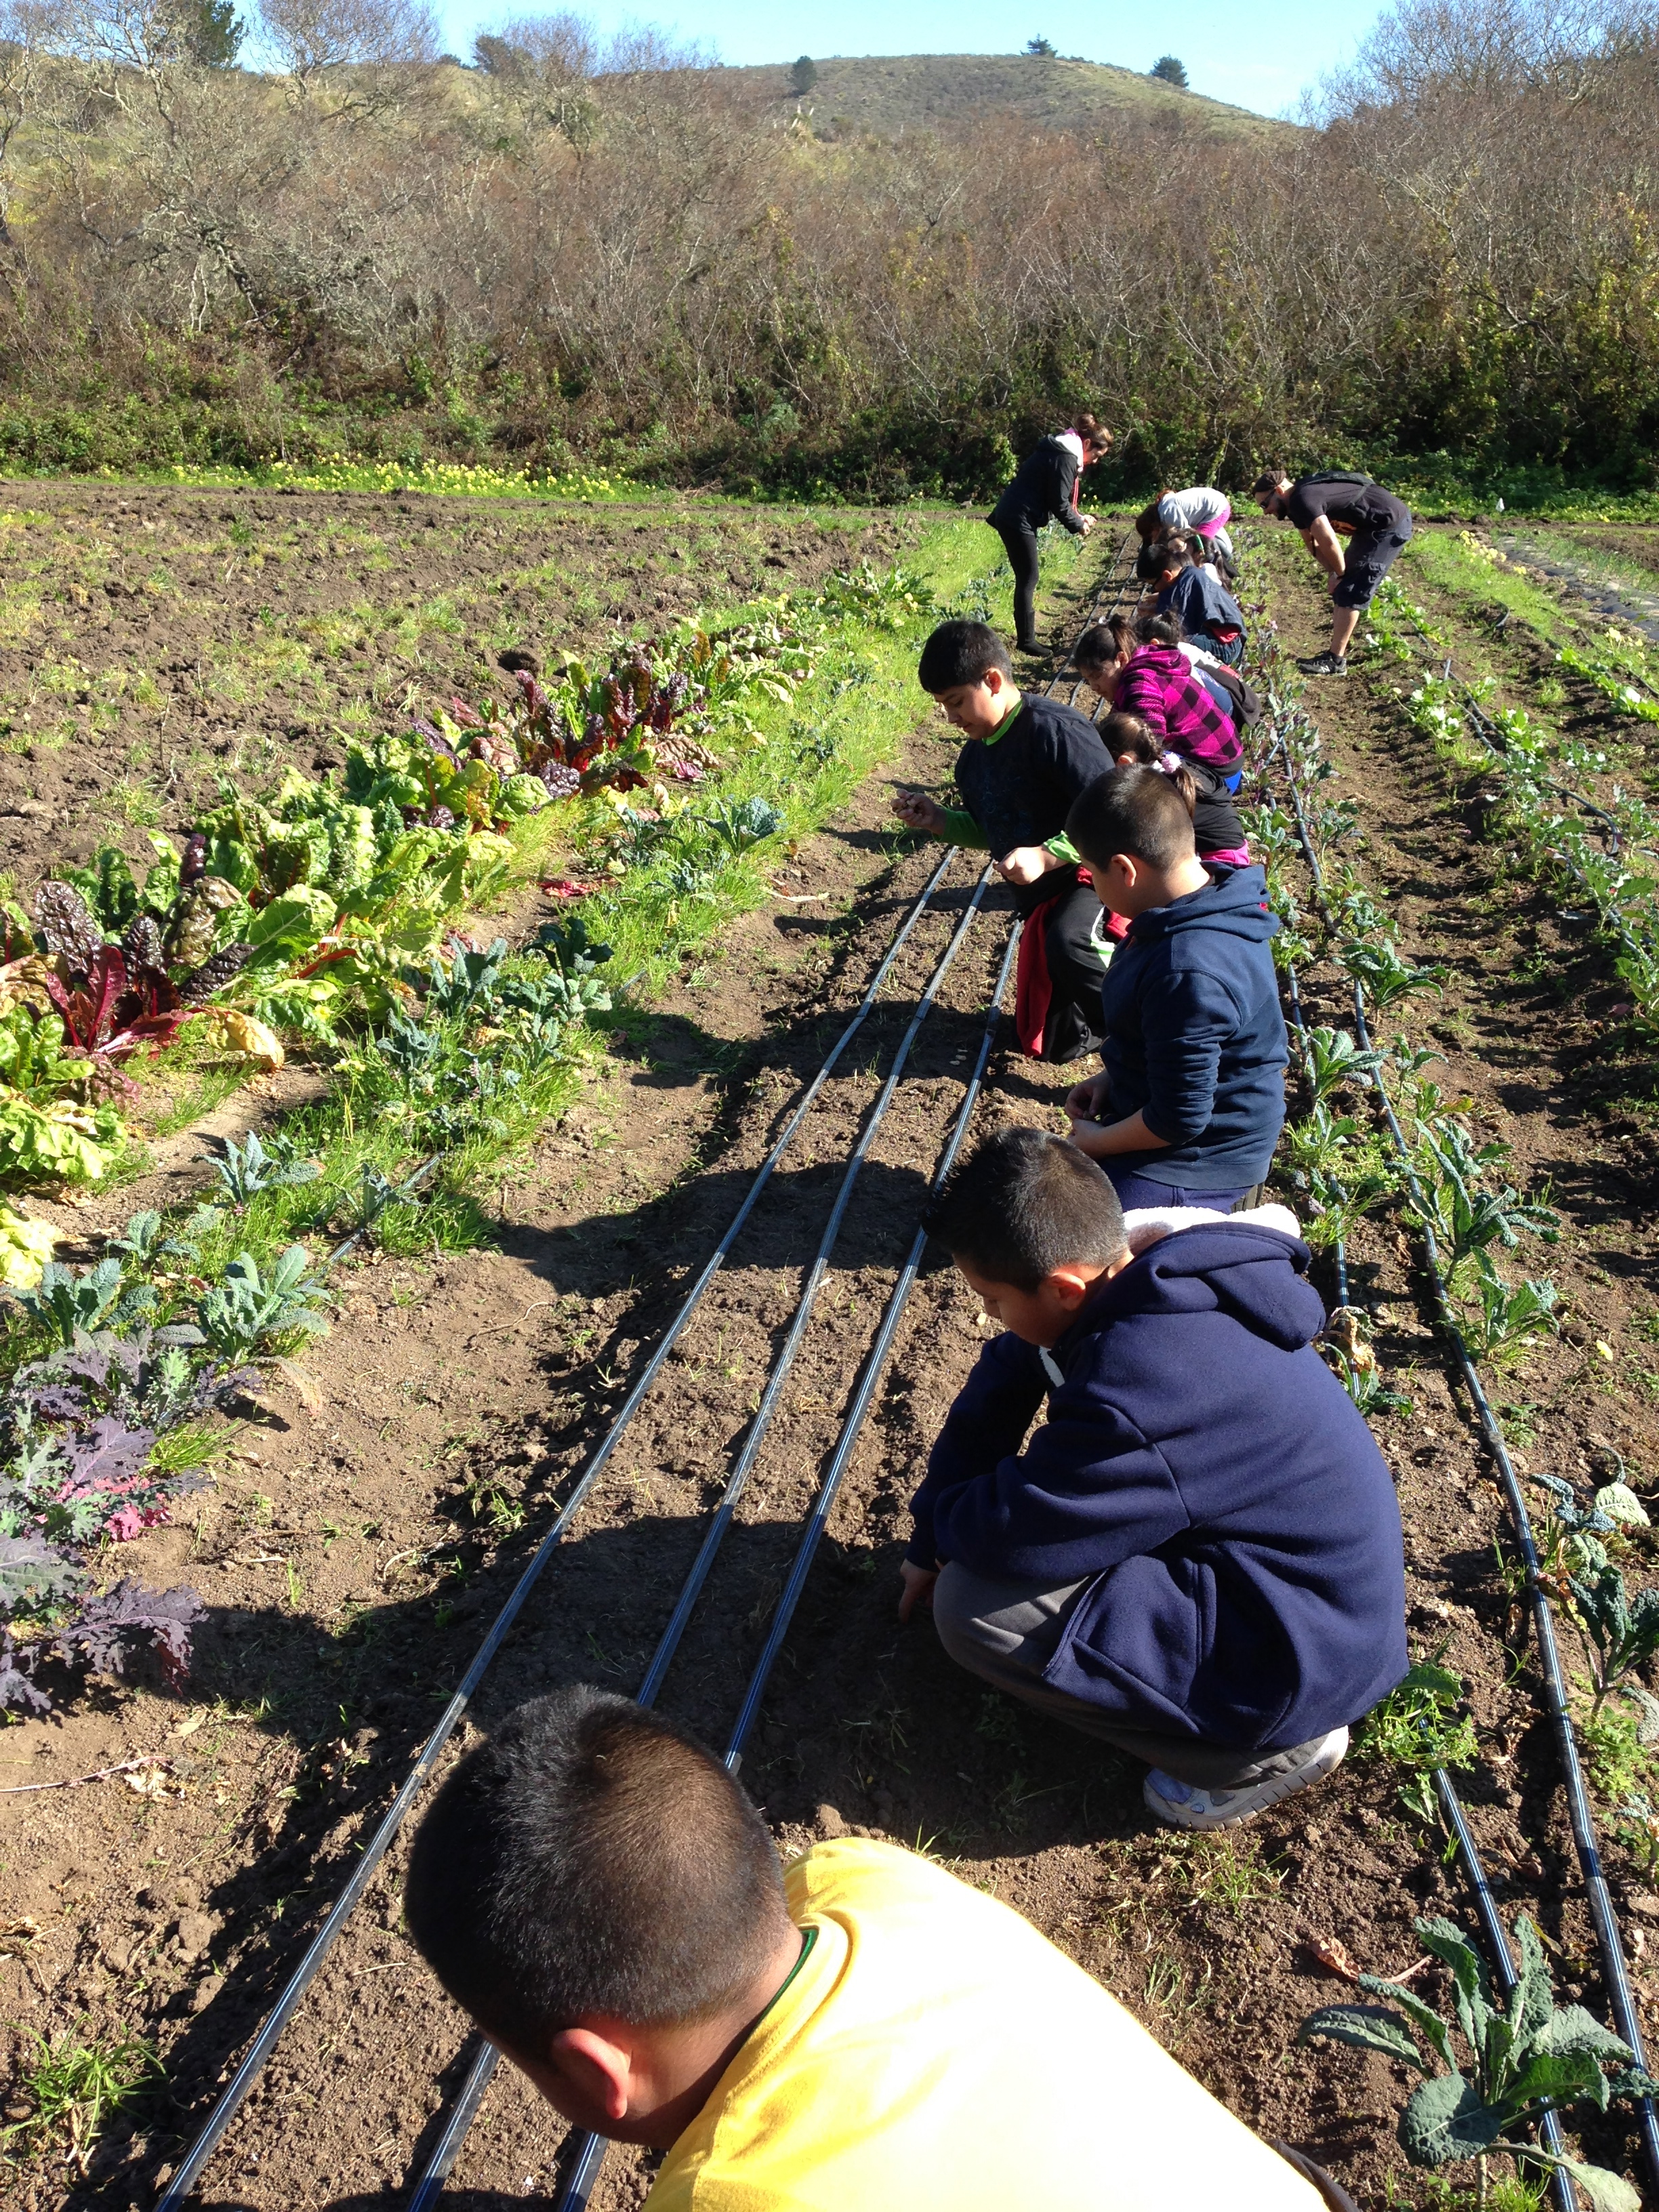 Started the San Mateo School Farm in 2010, a 2-acre educational farm that provides hands on learning opportunities to students across San Mateo County, regardless of income -